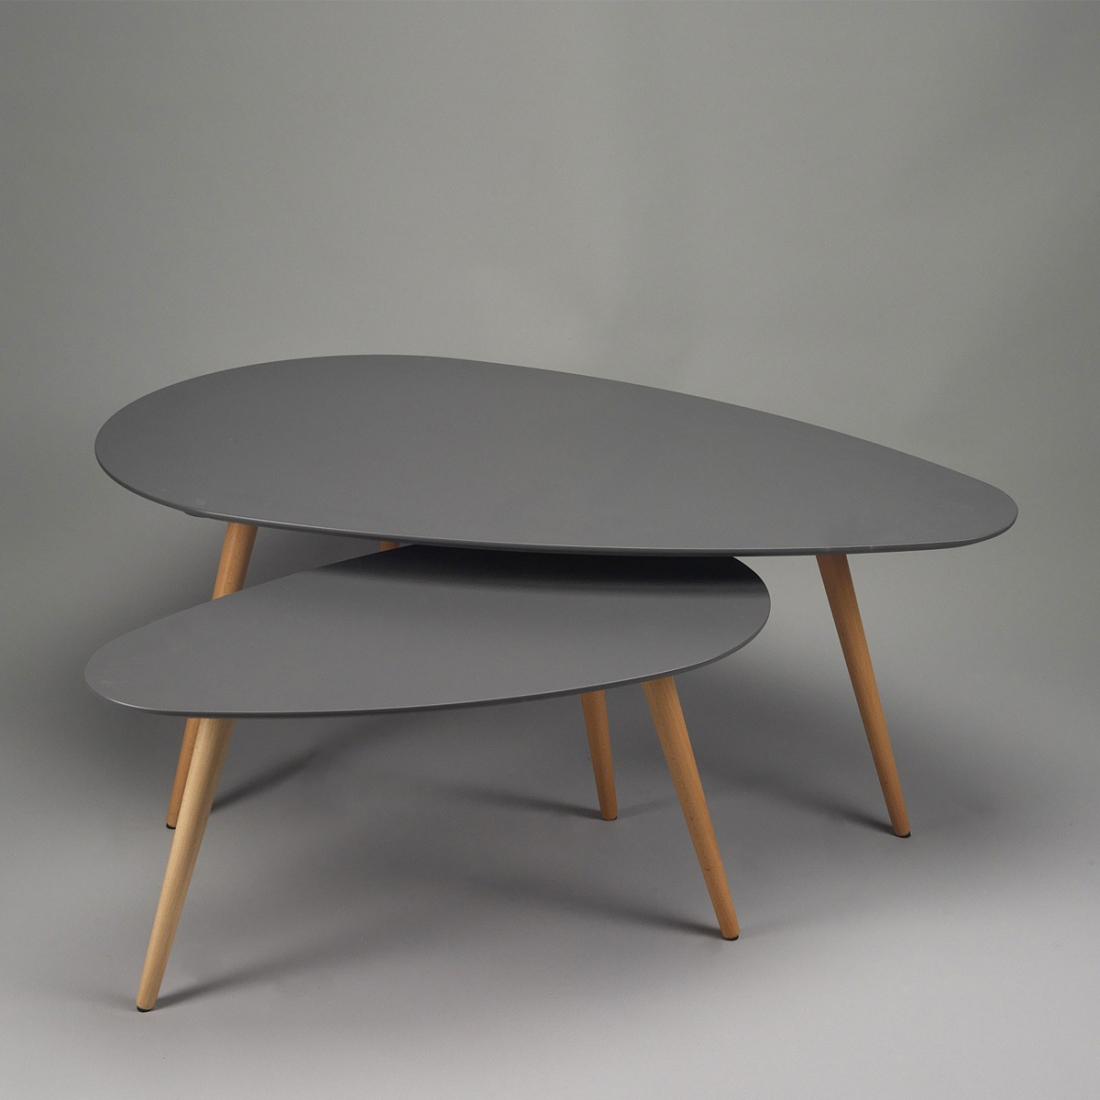 Tables basses gigognes design zendart design - Table basse scandinave gigogne ...